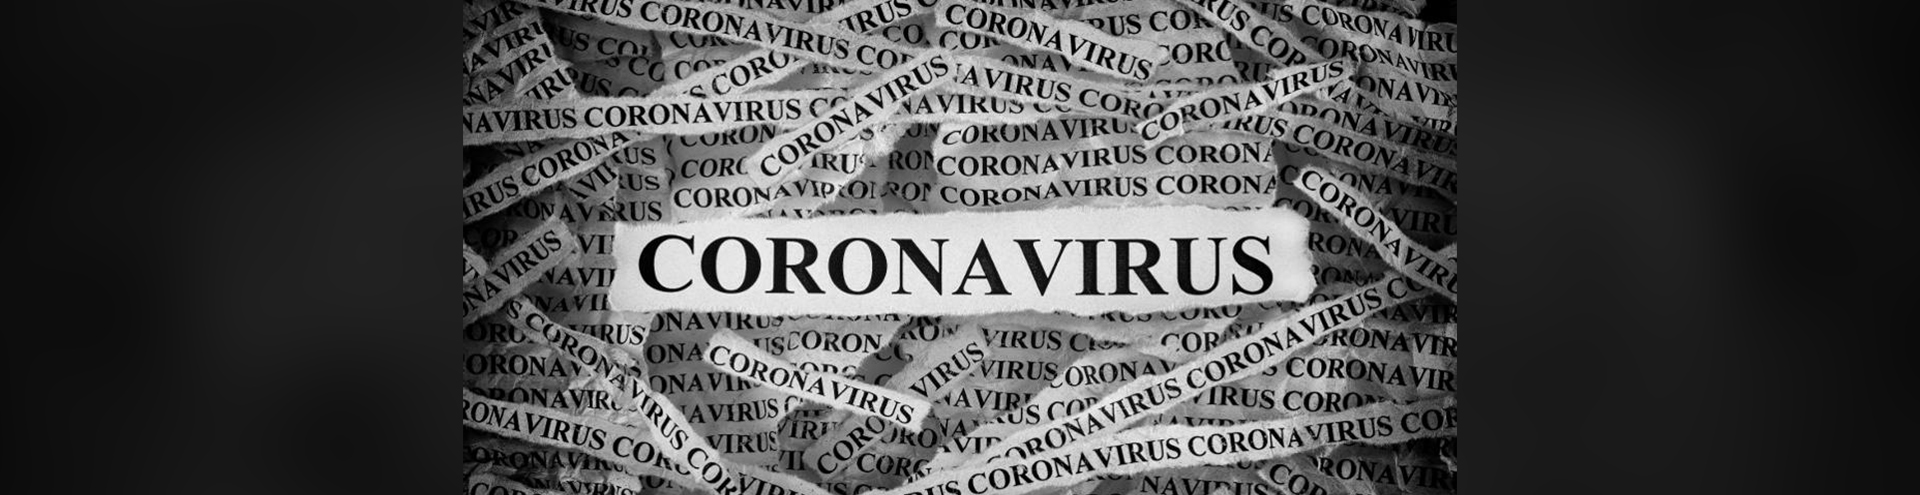 Business Continuity Plan during Corona virus lock down